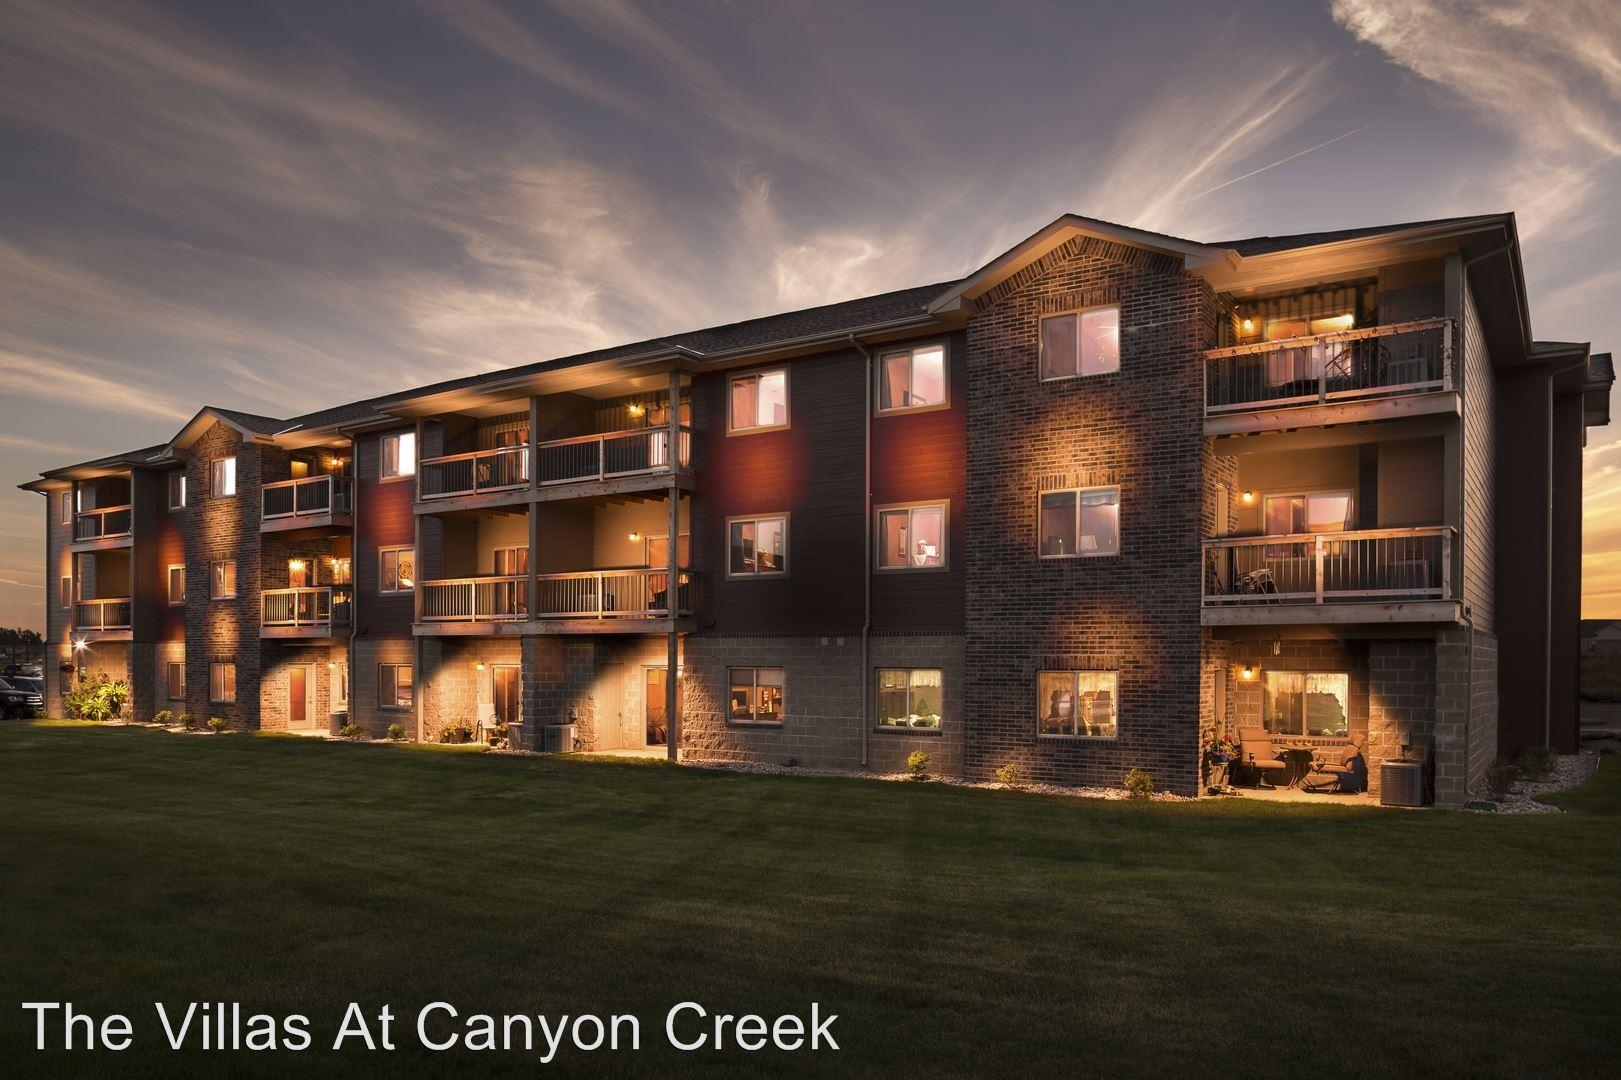 The Villas At Canyon Creek 4630 East 54th Street Apartments, Sioux Falls SD    Walk Score